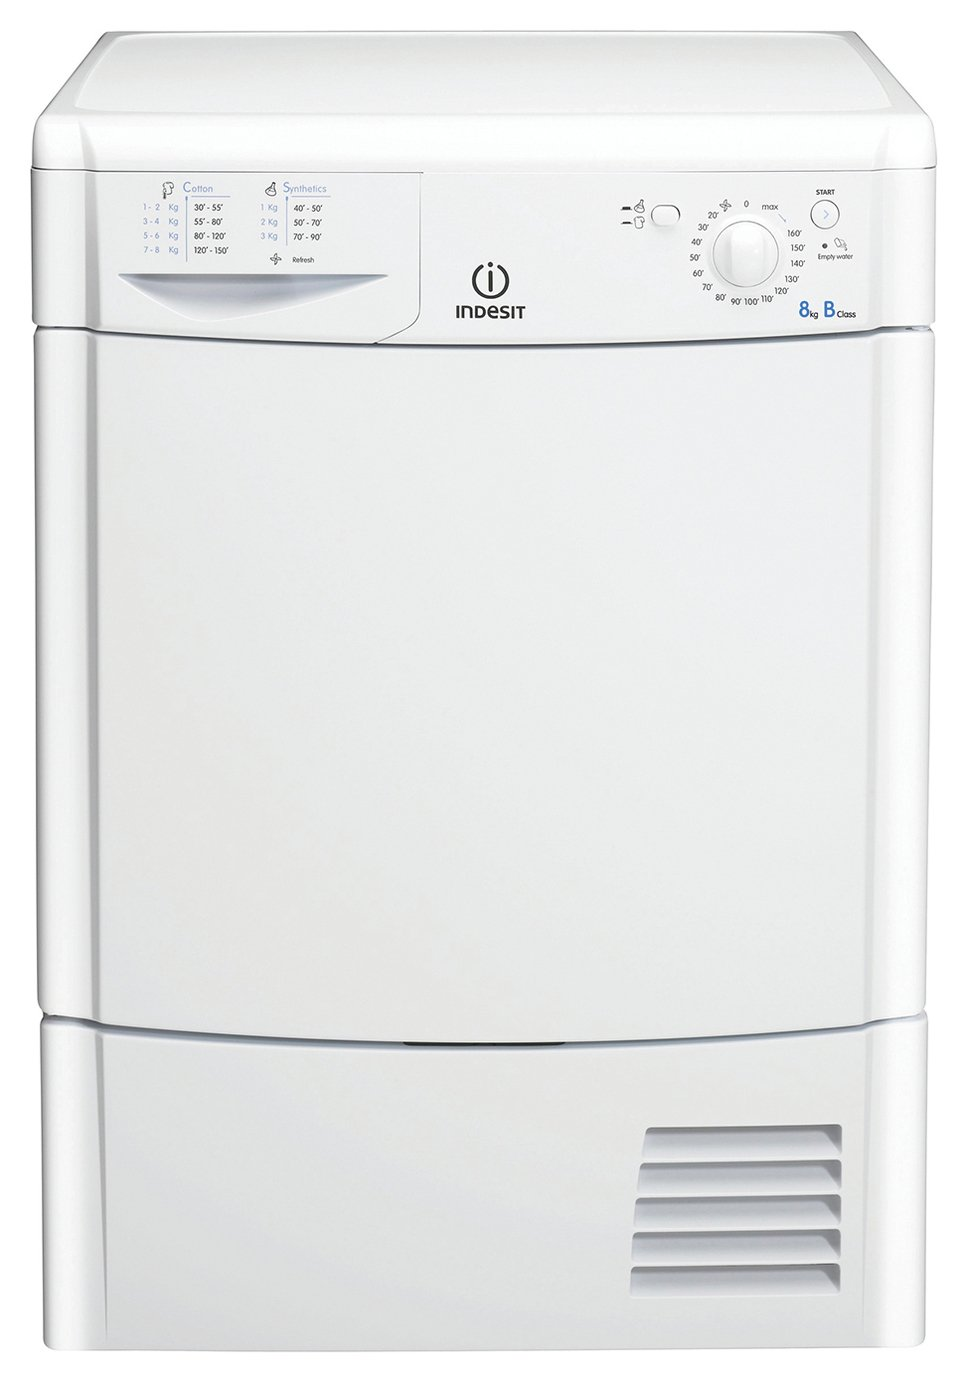 Indesit - IDC8T3B 8KG Condenser - Tumble Dryer - White